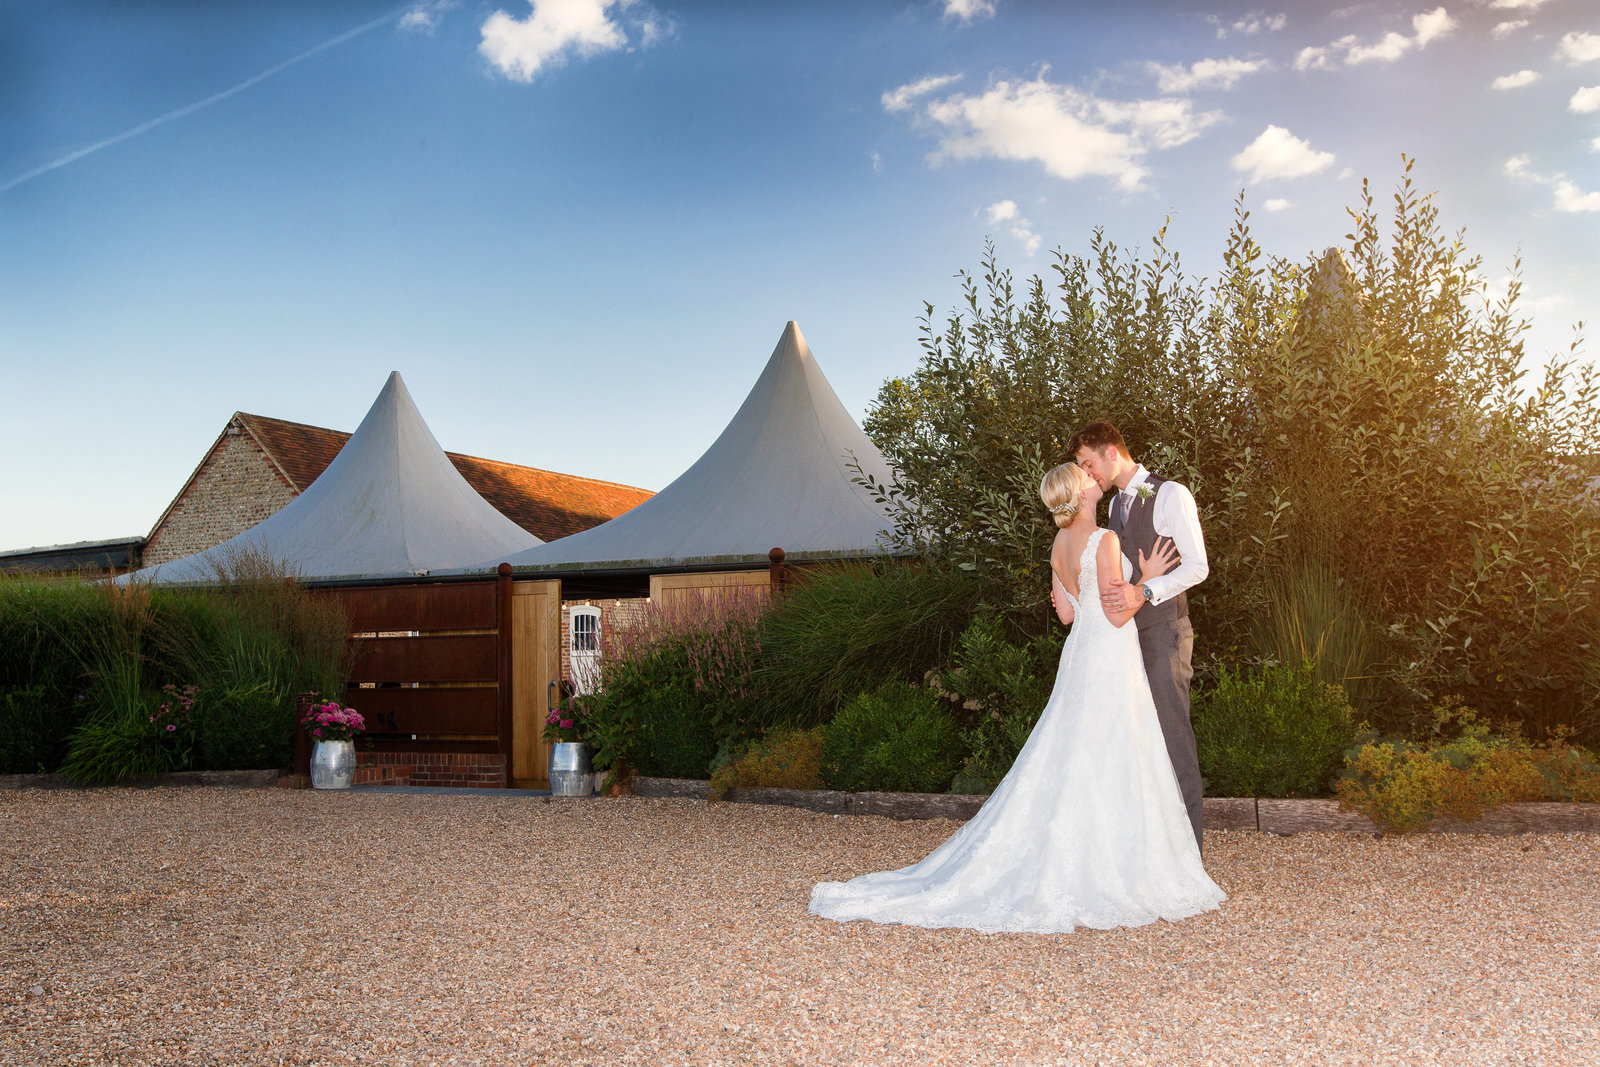 adorlee-0629-southend-barns-wedding-photographer-chichester-west-sussex